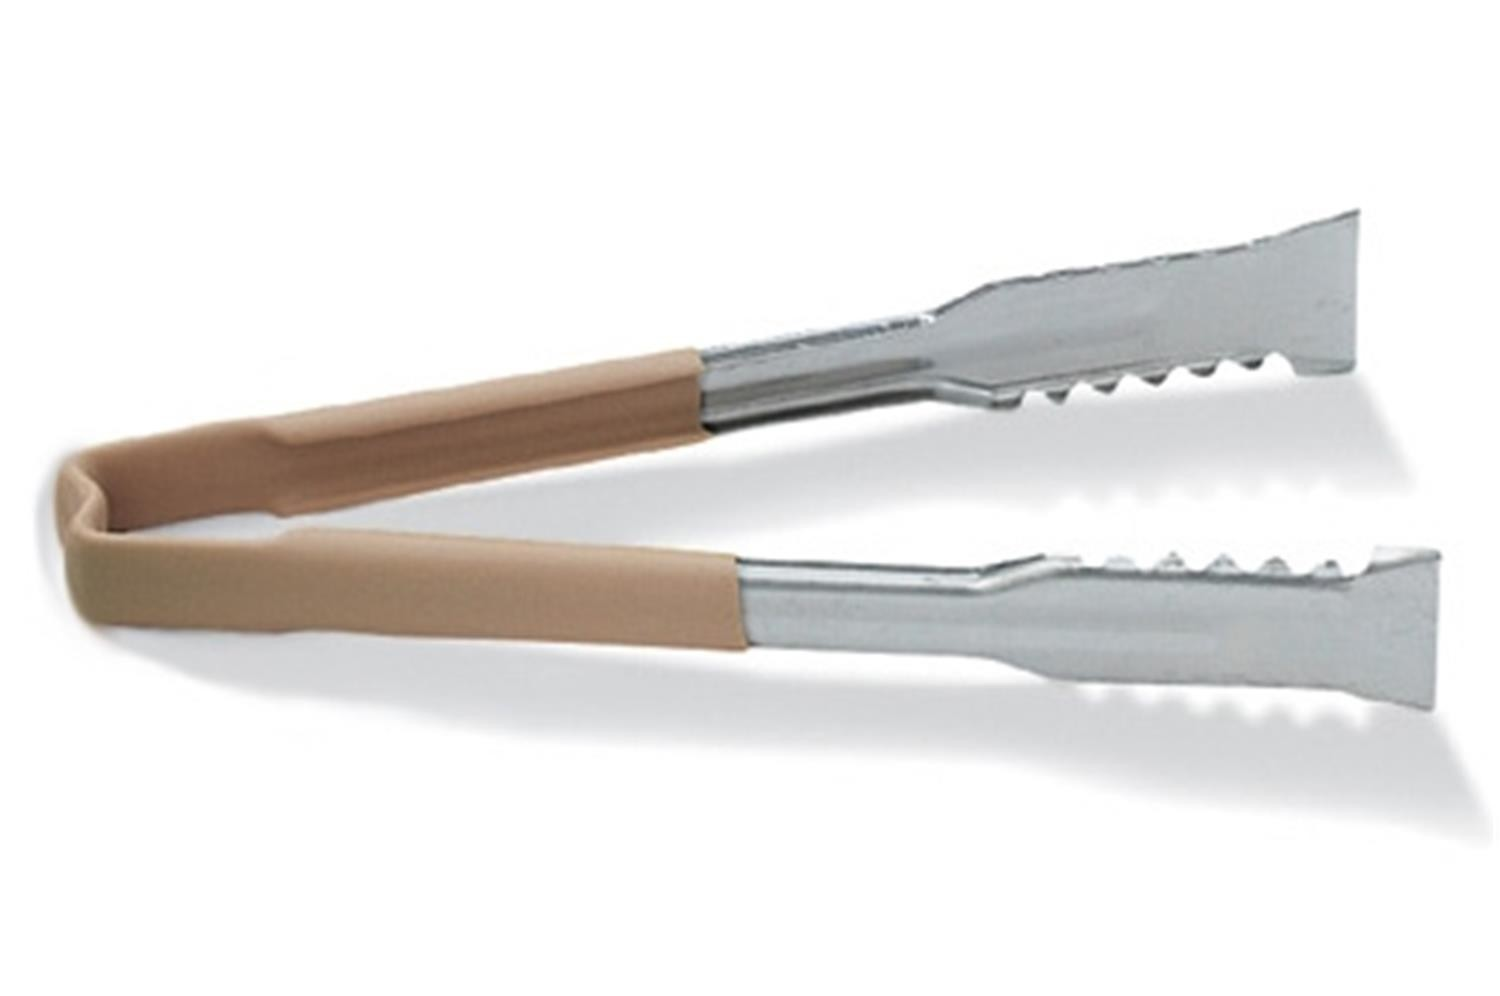 Vollrath 4791260 Kool-Touch VersaGrip Tong with Tan Handle 12""